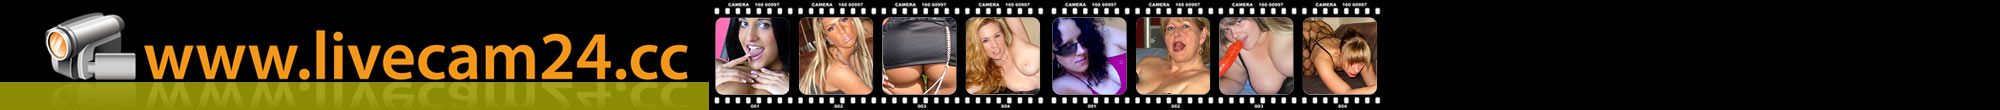 CandyLavinia, 30 Jahre, BH: 0 A - gratis livechat -  - Video Web Cams Live Sex Chat von heissen Girls